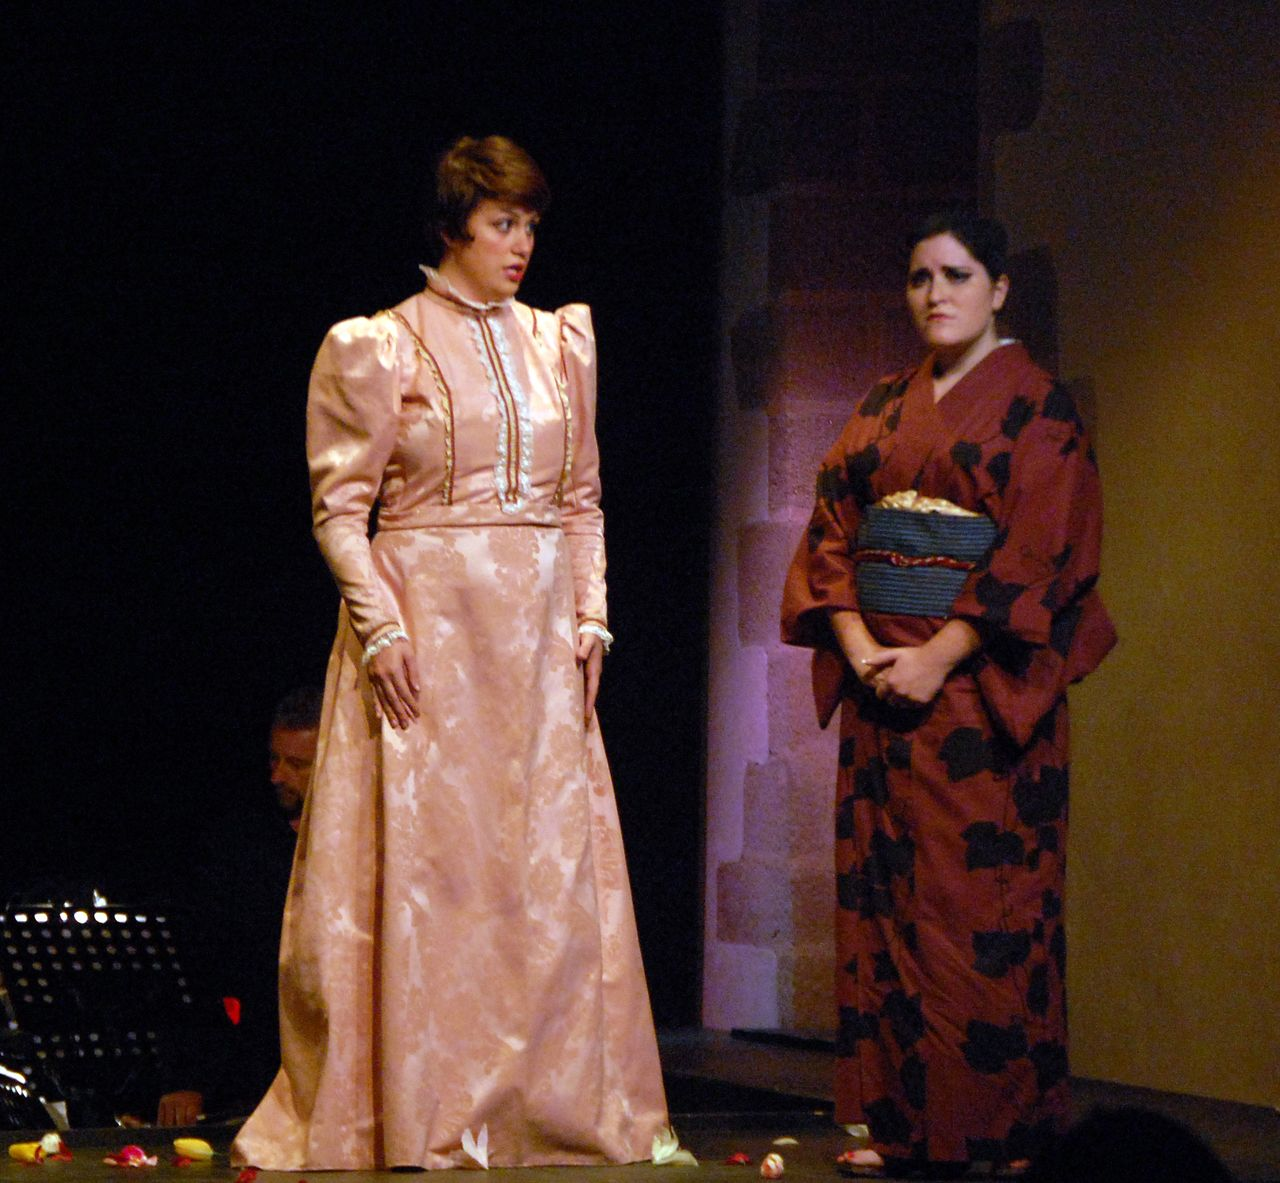 Virginie-Stucki-Recup-And-Cut-Brignais-Madame-Butterfly-Opéra-Festival-Lyrique-en-mer-Kimono